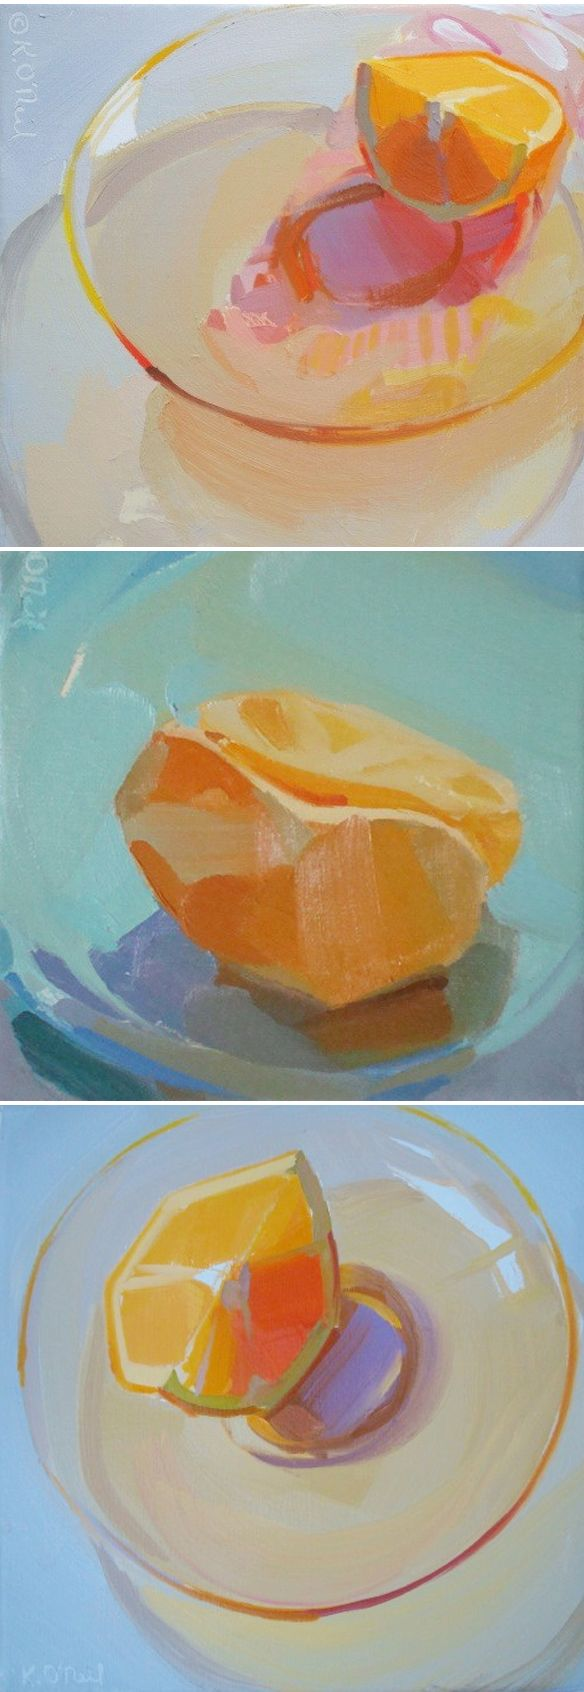 paintings by karen o'neil: Paintings Art, Karen O'Neil, Http Www Karenoneilfineart Com, Karen O' Neil, Beauty Color, Karen Oneil, Karenoneil2 Jpg 584 1 692, Food Art, Fruit Orange